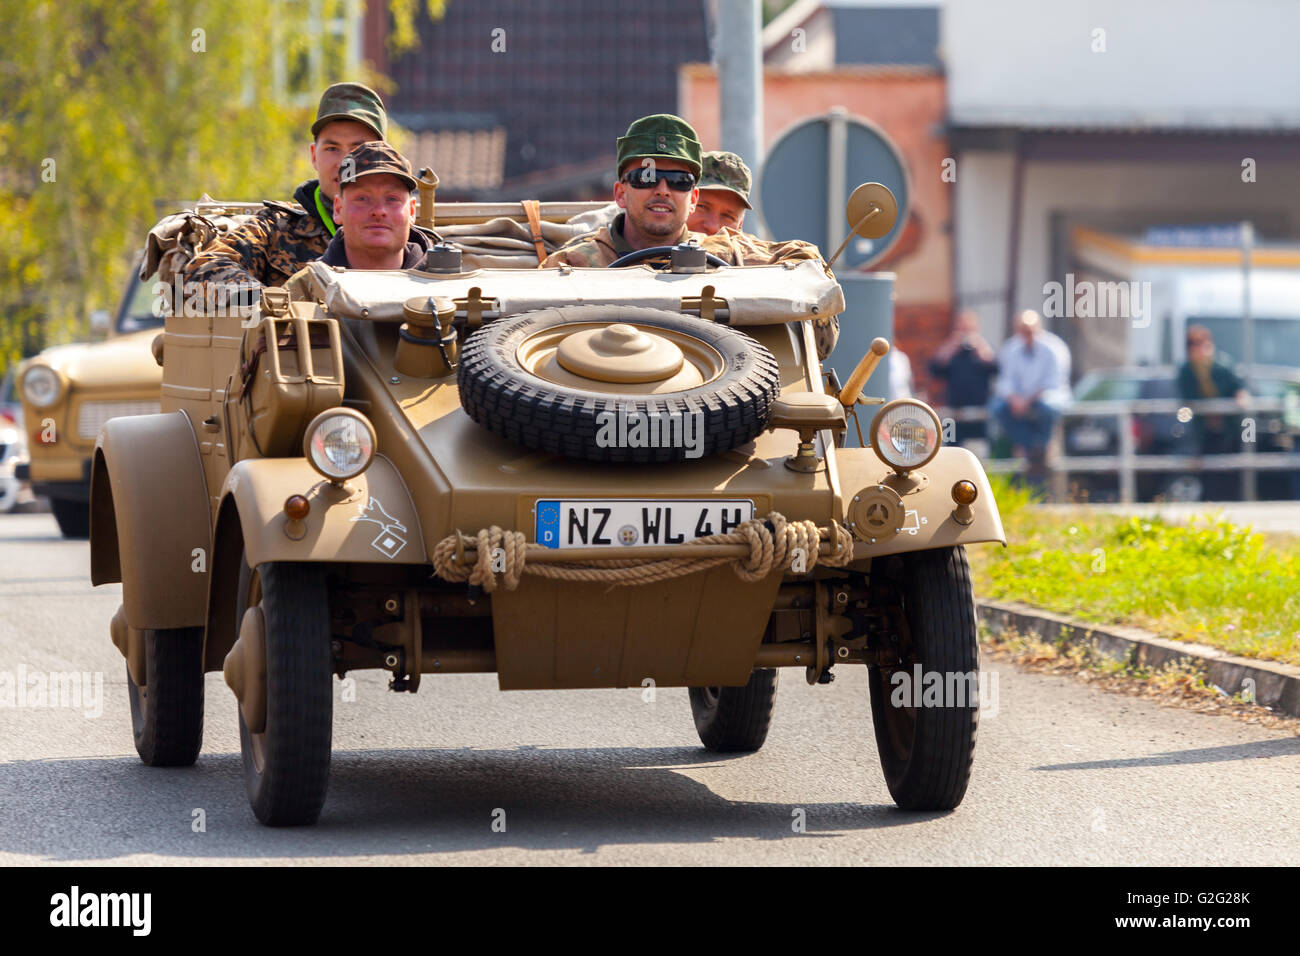 ALTENTREPTOW / GERMANY - MAY 1, 2016: german kubelwagen, vw typ 82 drives on an oldtimer show in altentreptow, germany - Stock Image